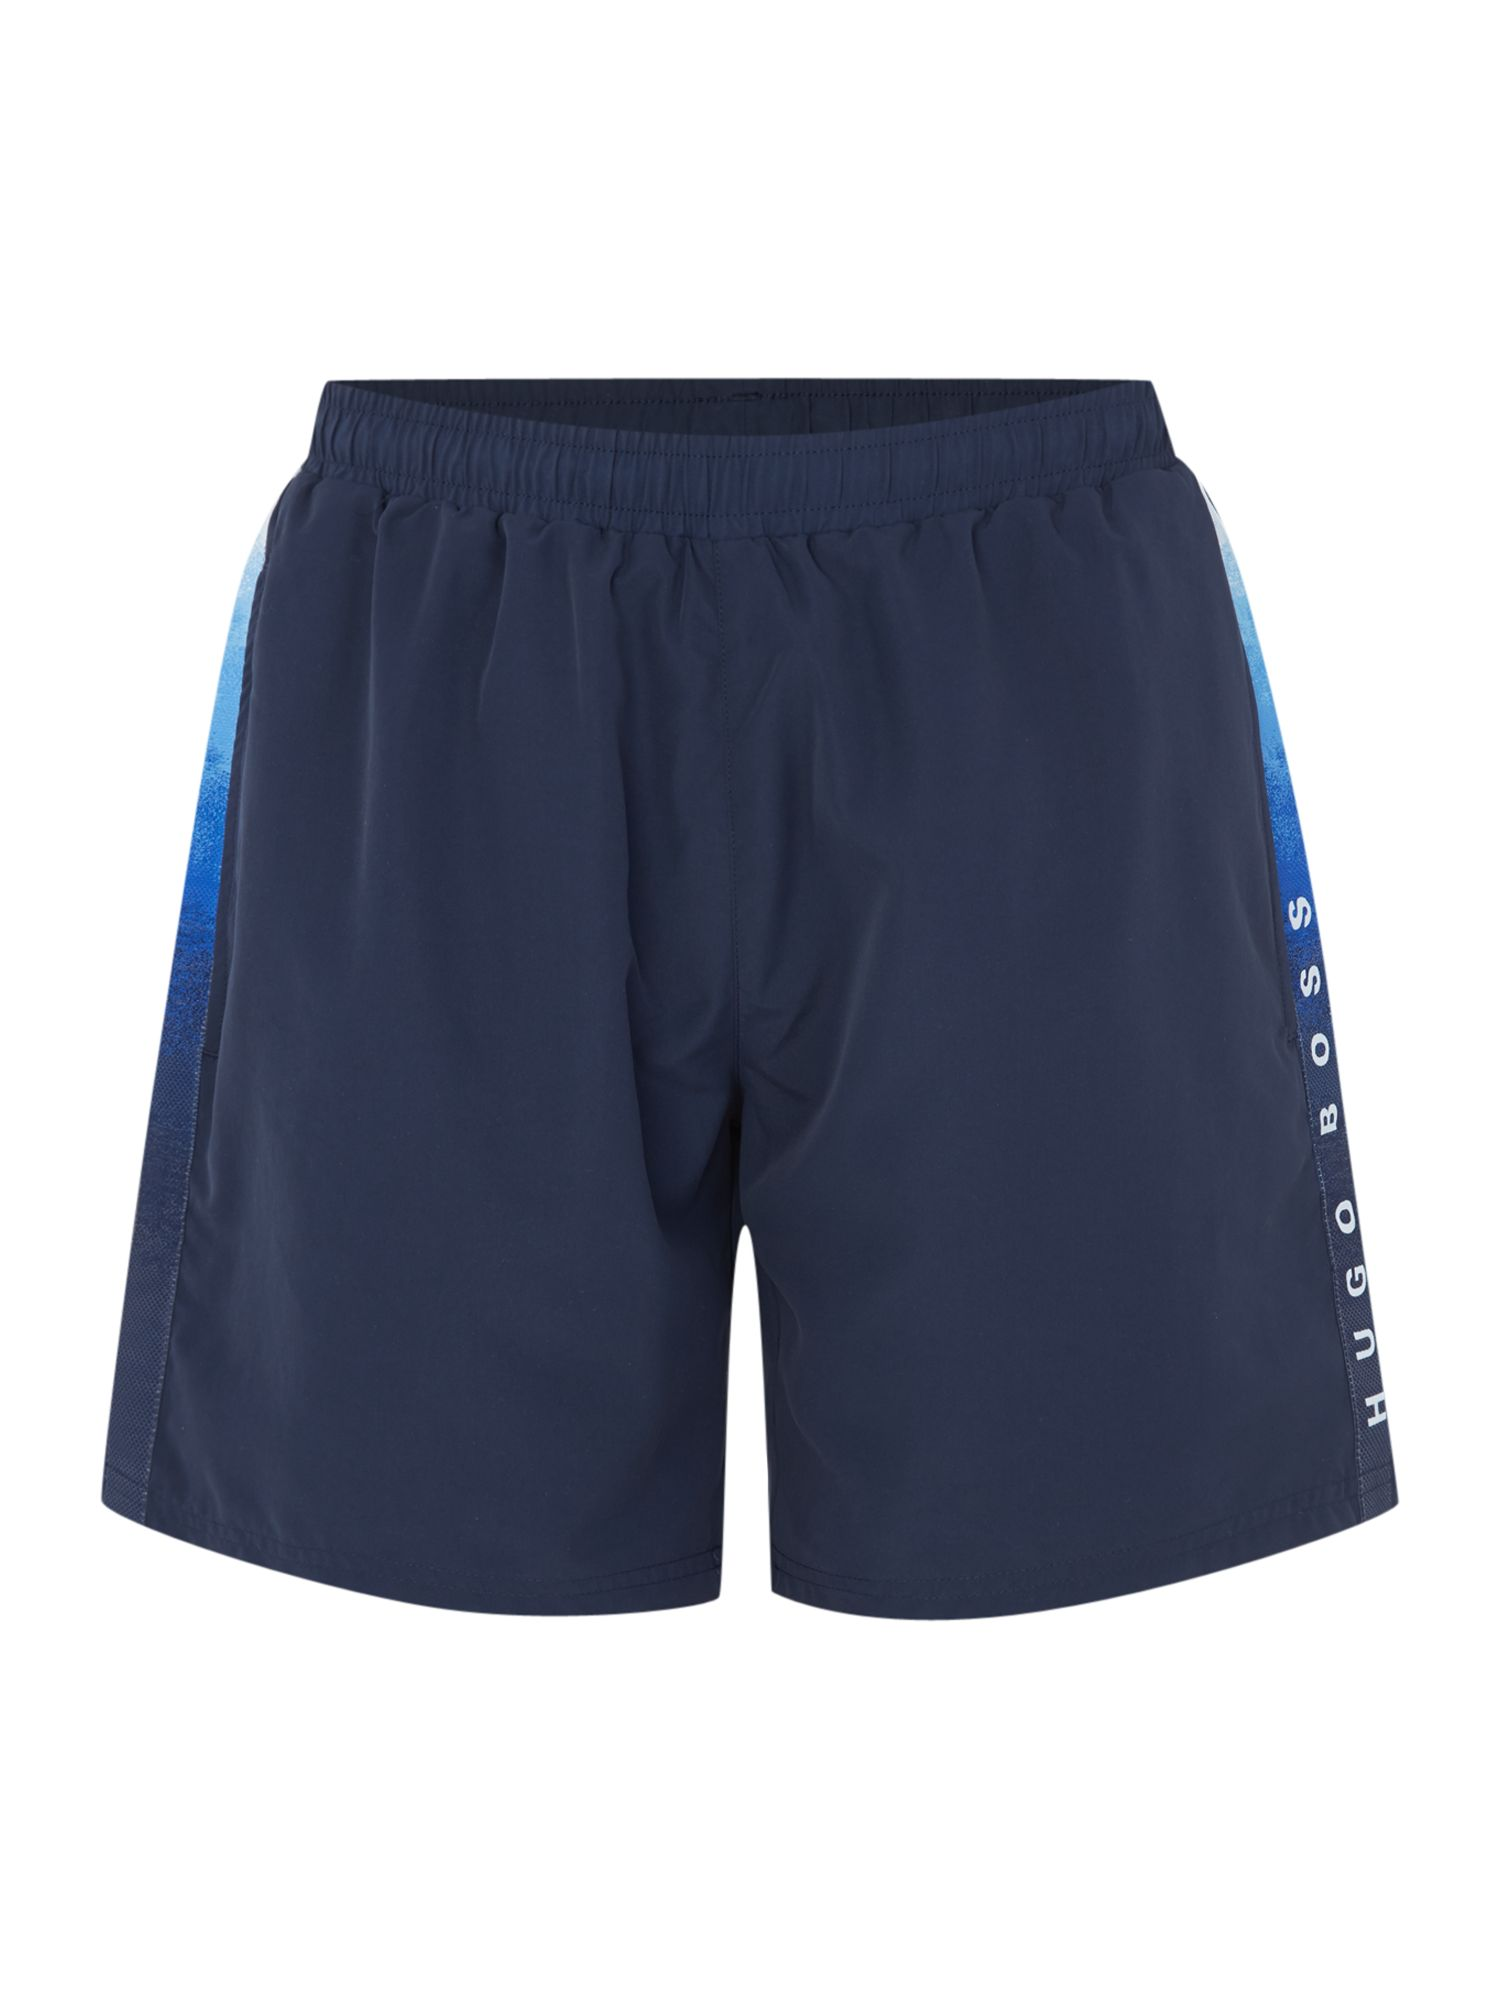 Men's Hugo Boss Seabream Logo Taping Swim Shorts, Blue